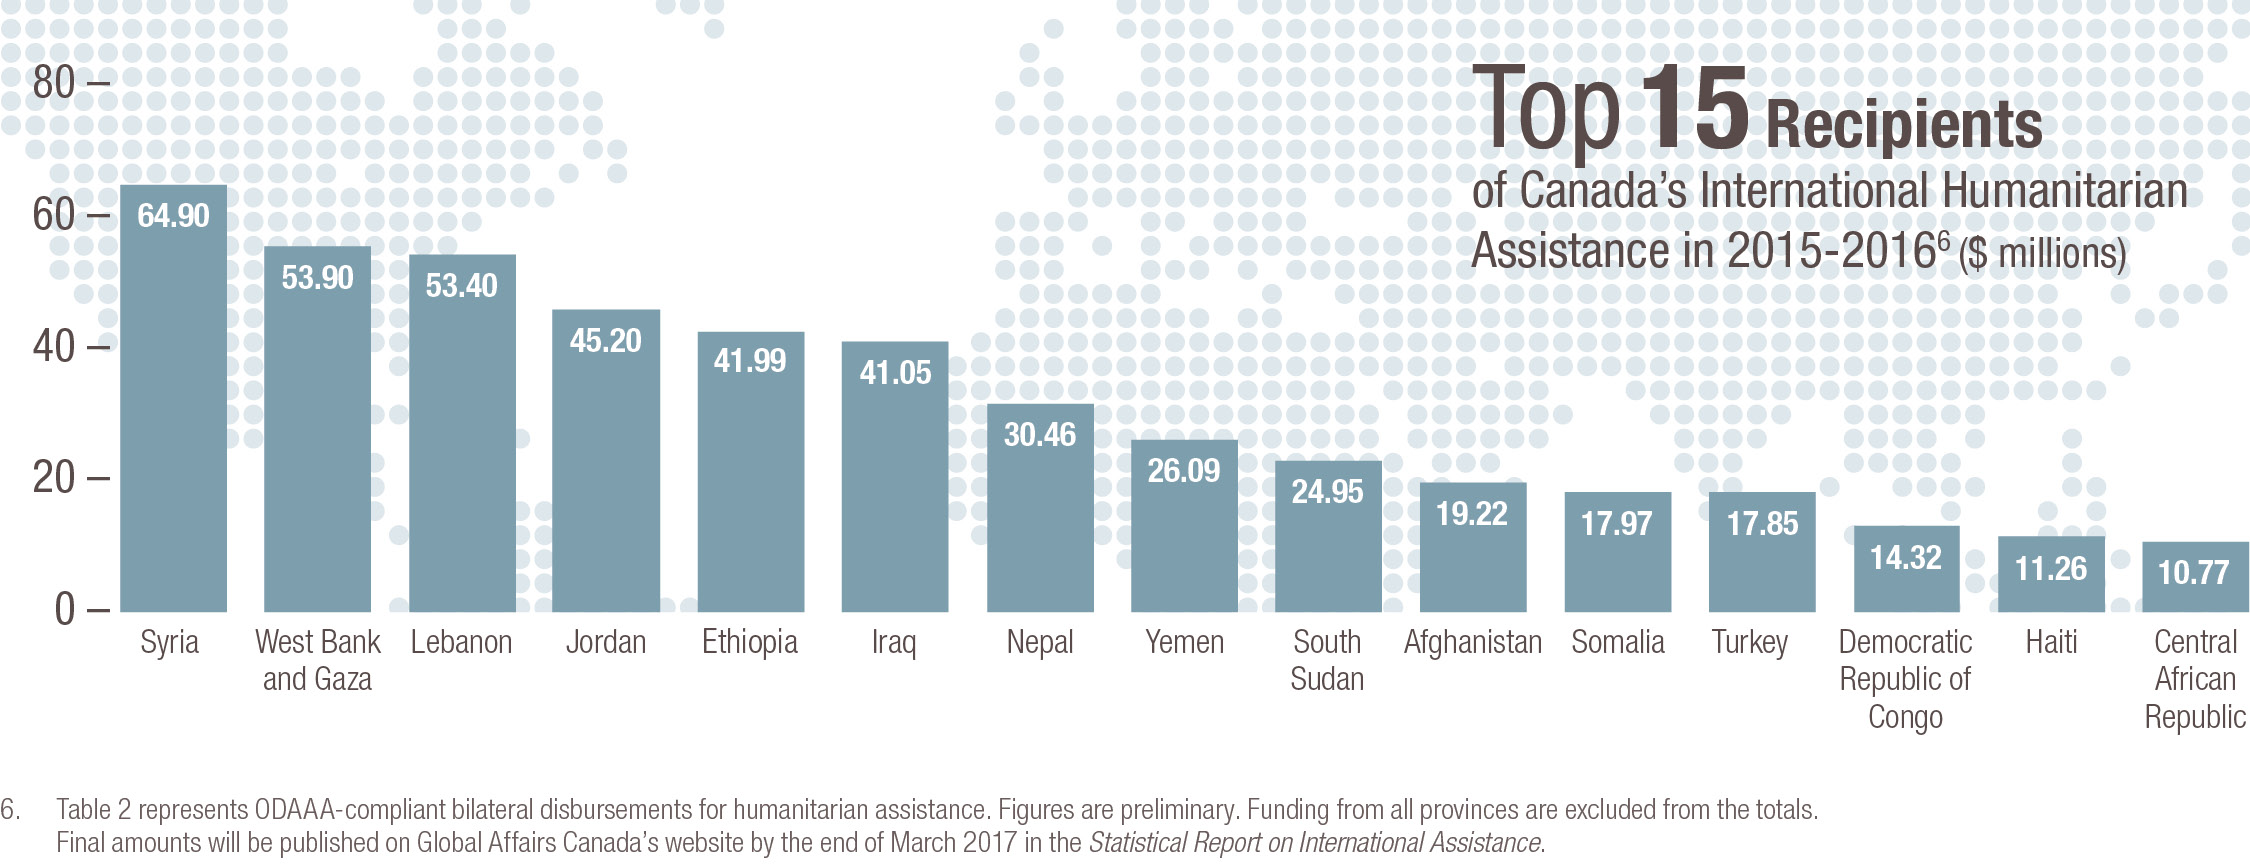 Top 15 recipients of Canada's international humanitarian assistance in 2015-2016 ($ millions)